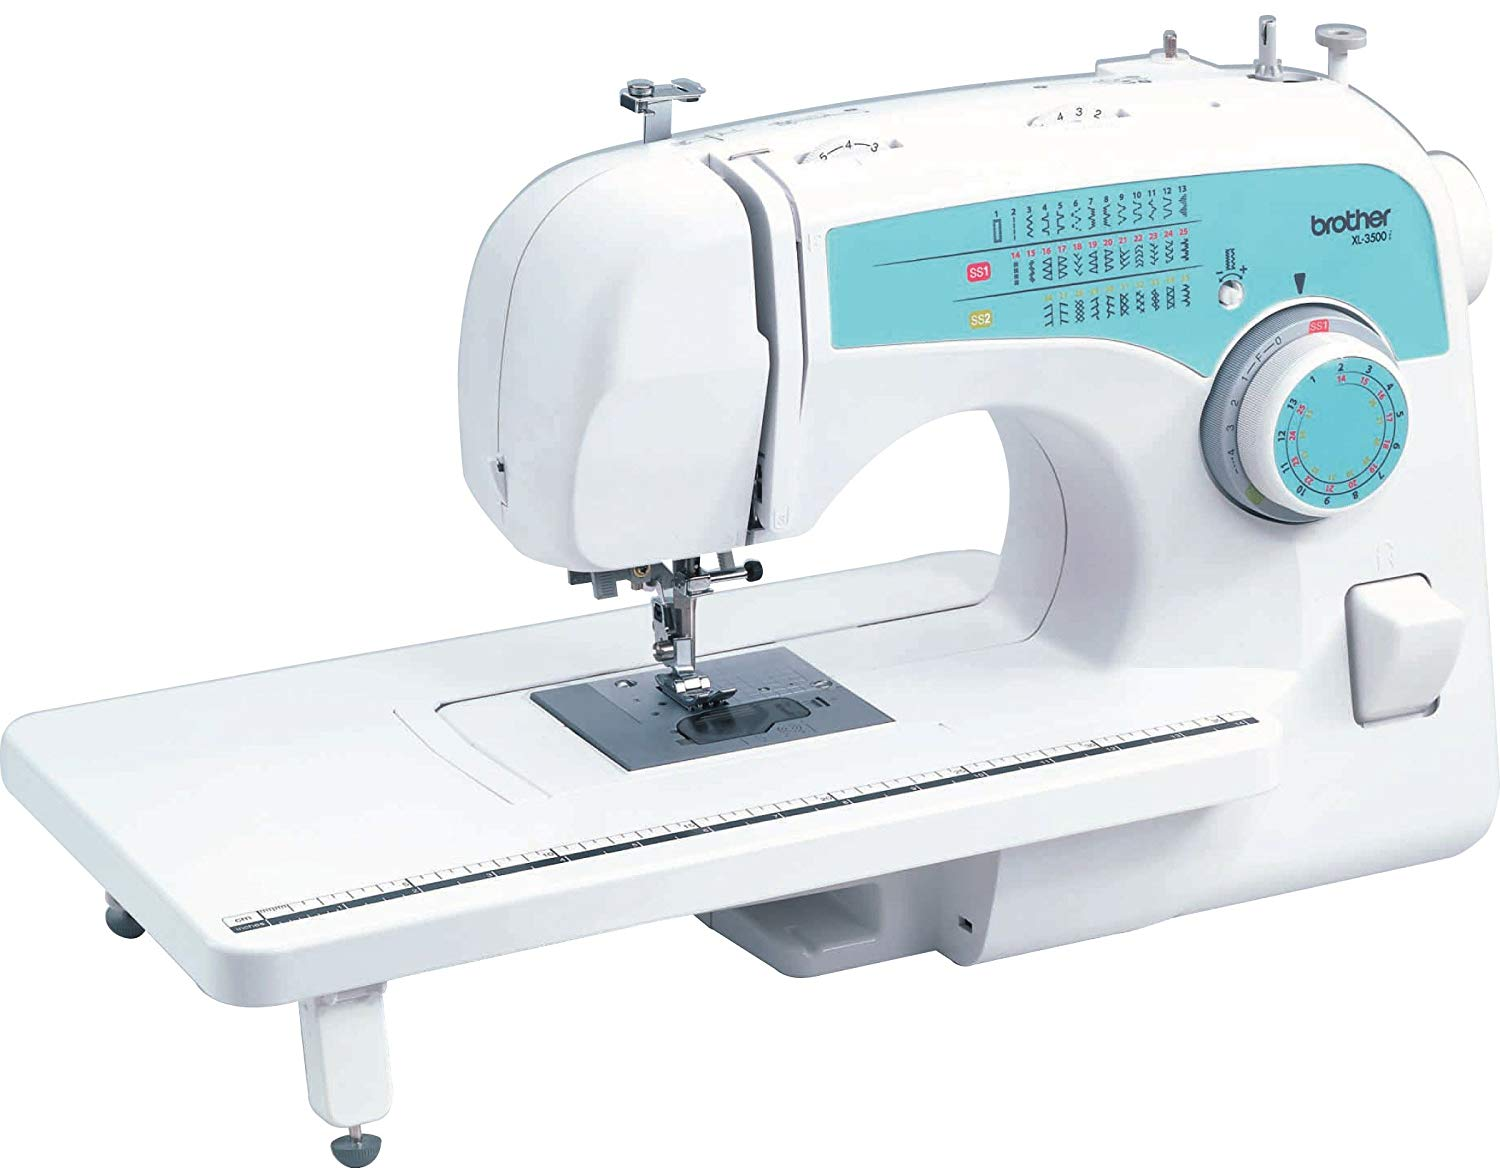 Beginners Sewing Machines Sewing Machine Review Part 4